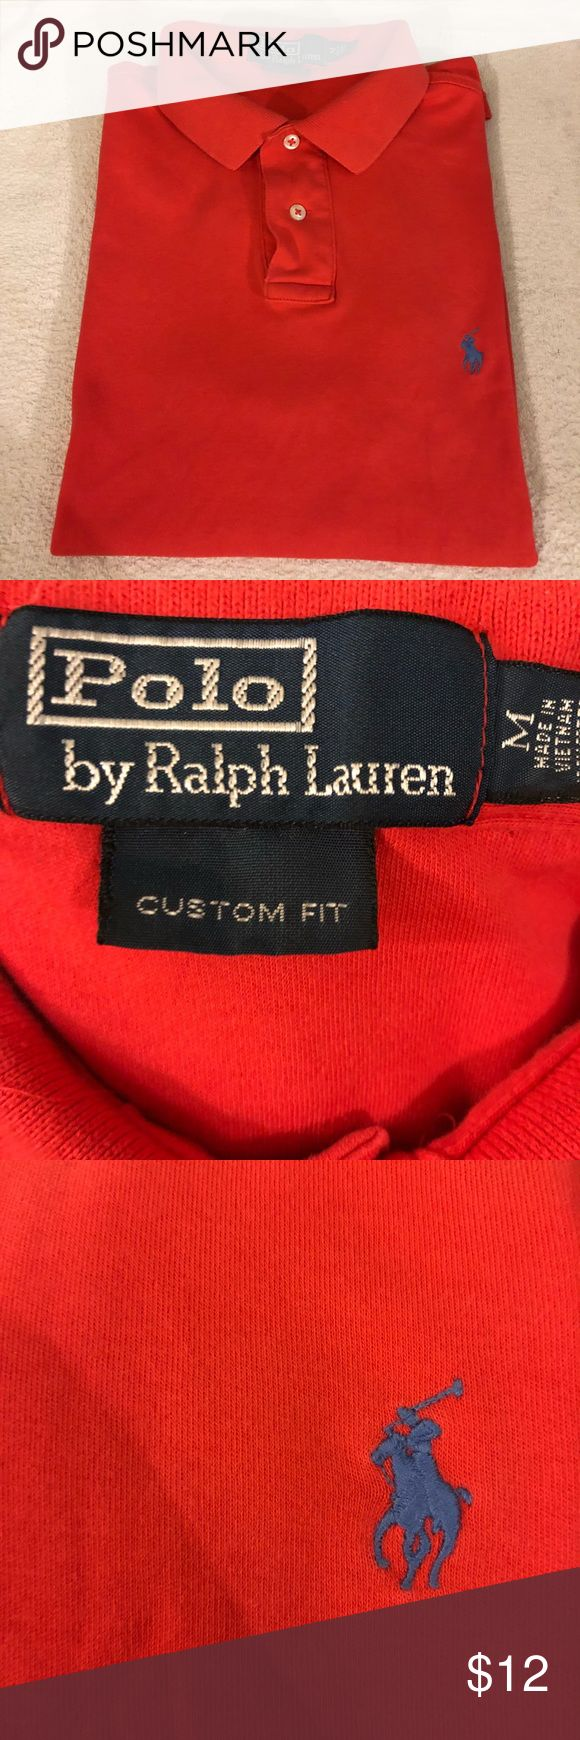 Polo Ralph Lauren Red Custom Fit Polo Shirt M Polo Ralph Lauren Solid Bright Red Custom Fit Short Sleeve Polo Shirt size M! Great condition! Please make reasonable offers and bundle! Ask questions! :) Polo by Ralph Lauren Shirts Polos